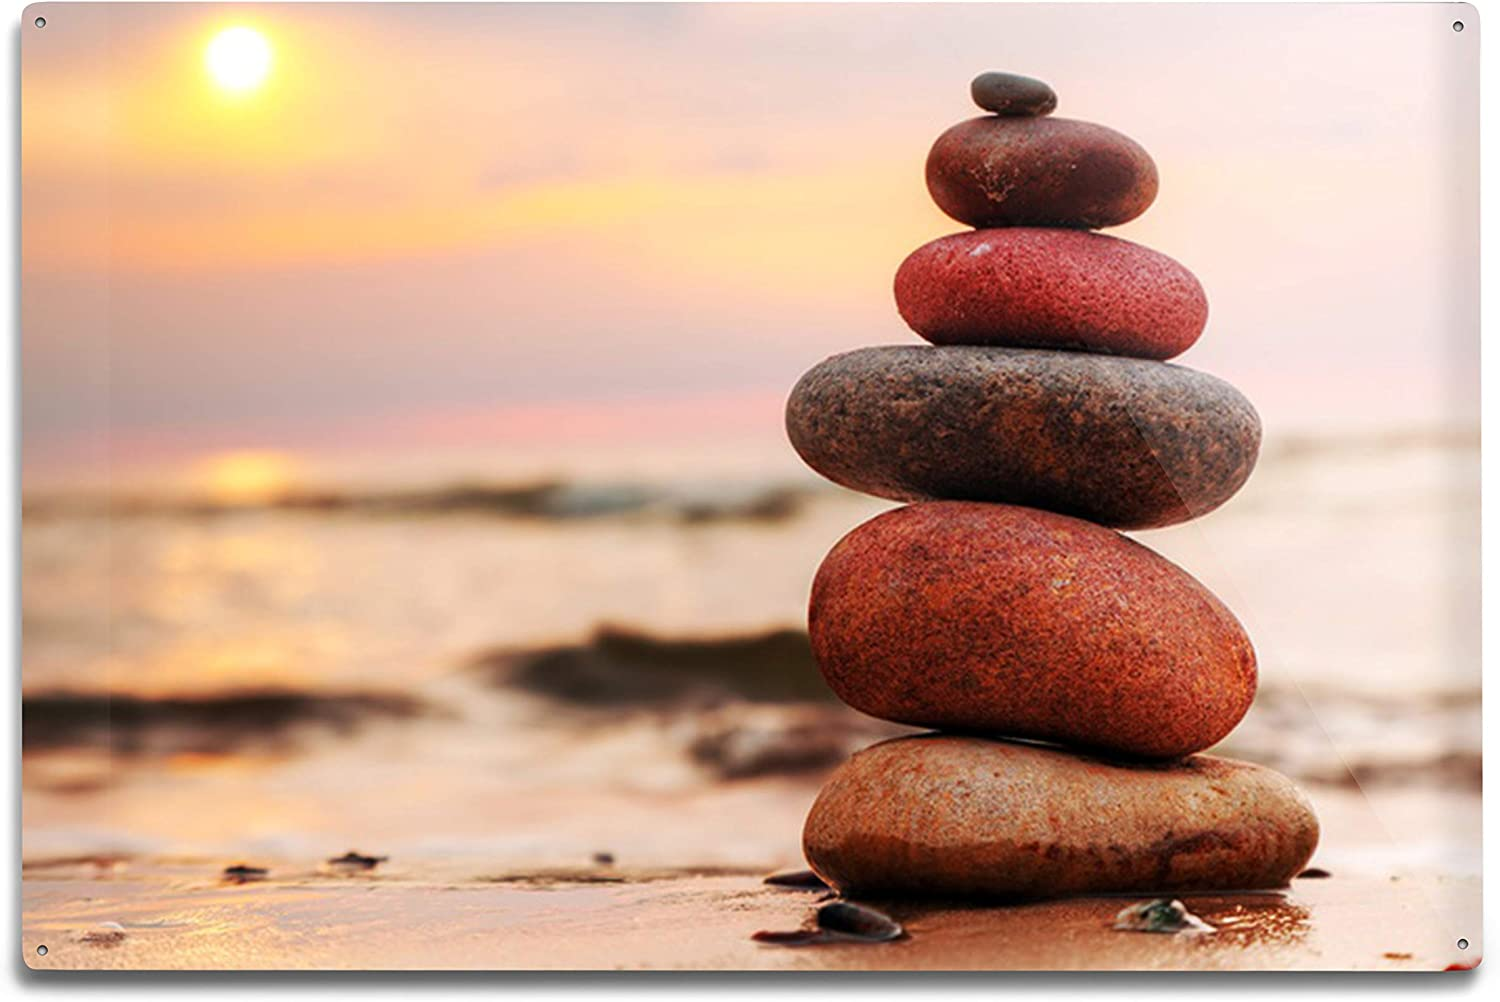 Lantern Press Stacked Zen Stones On Sand Outlet SALE A Sunset Daily bargain sale by Photography